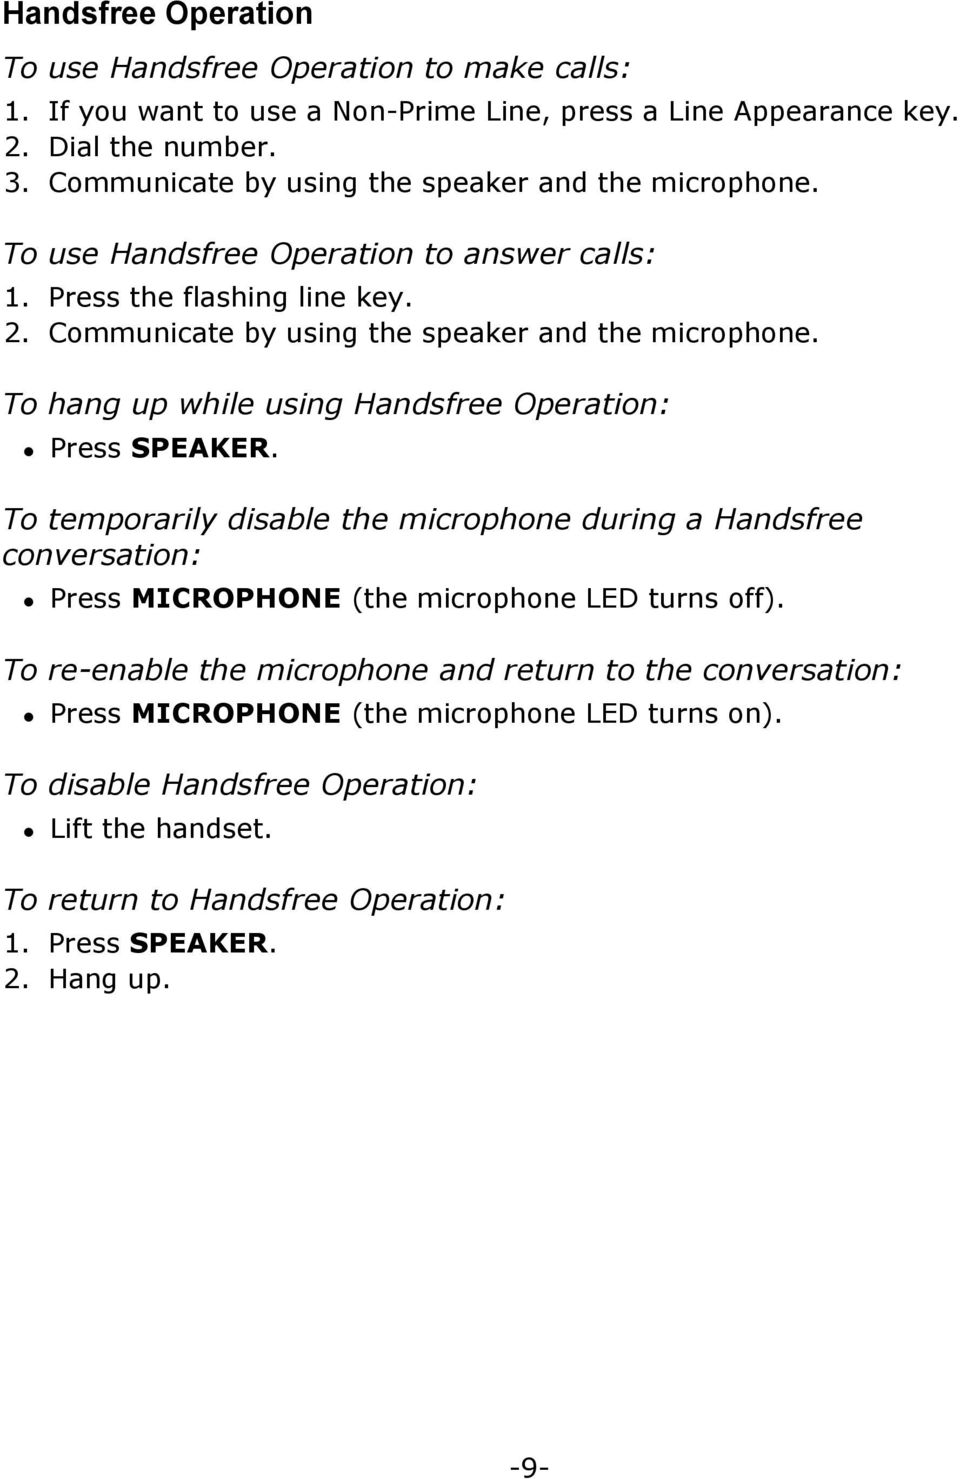 To hang up while using Handsfree Operation:! Press SPEAKER. To temporarily disable the microphone during a Handsfree conversation:! Press MICROPHONE (the microphone LED turns off).